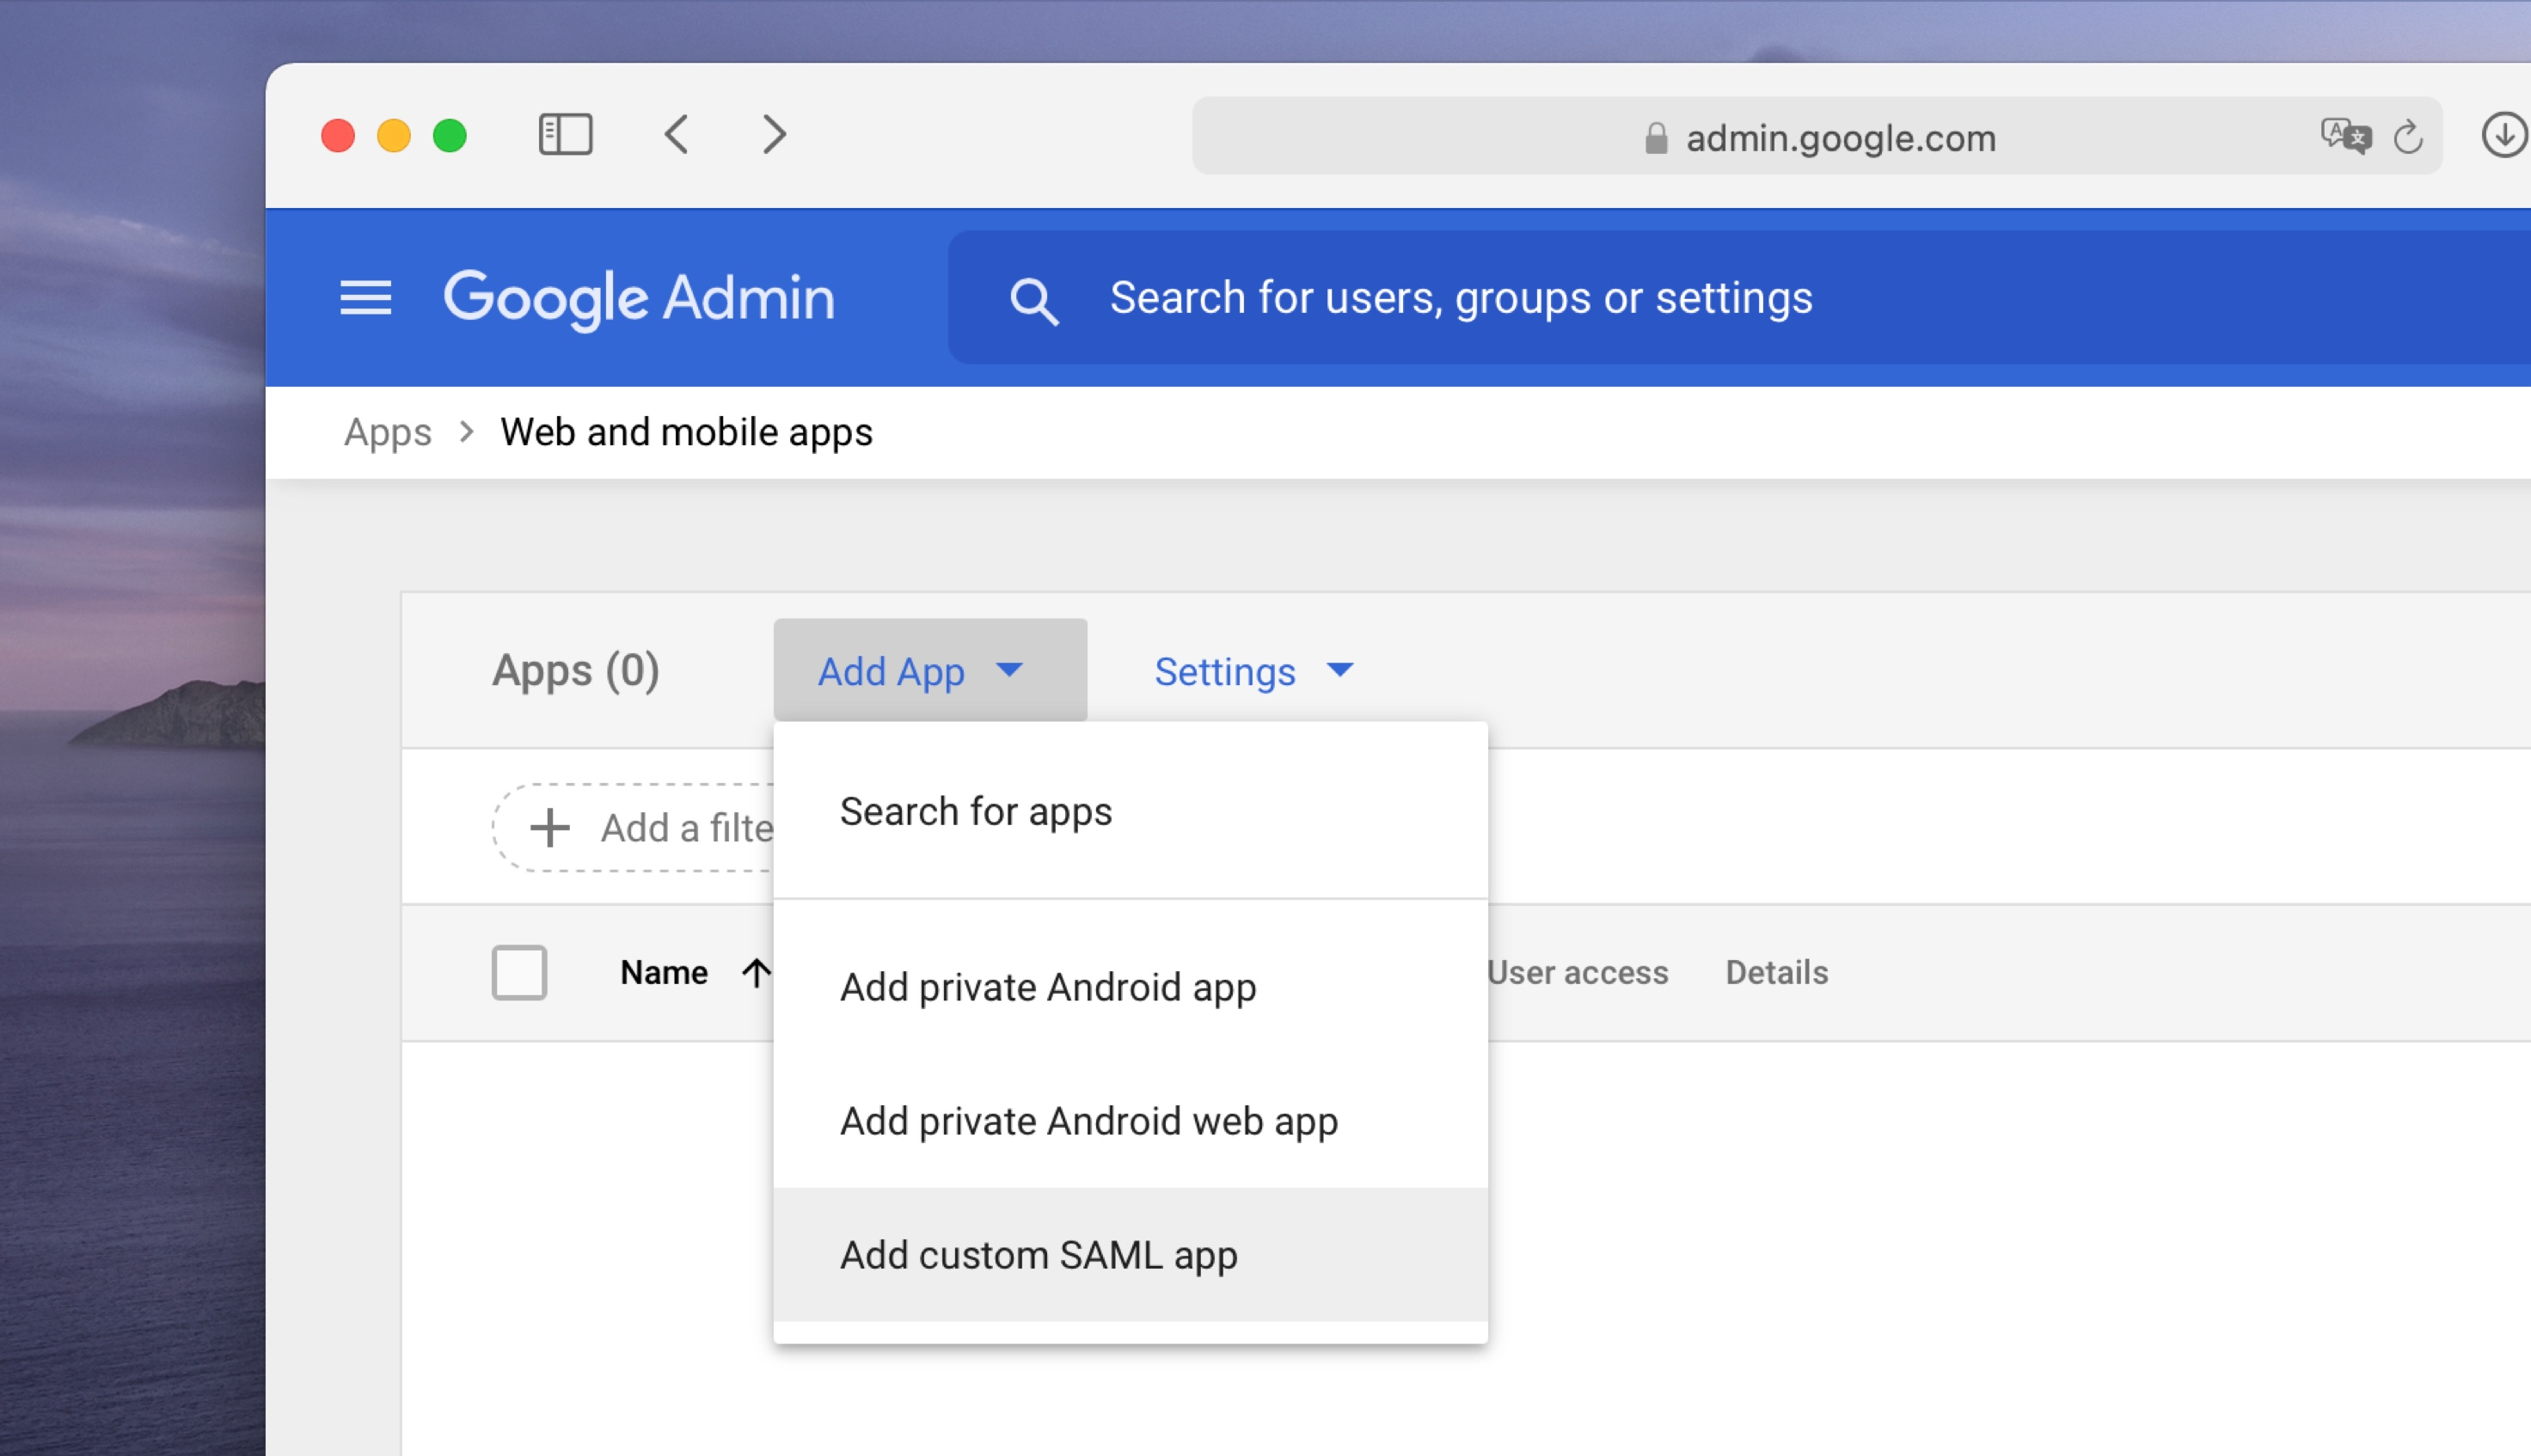 An image showing how to add a new SAML application in Google Suite